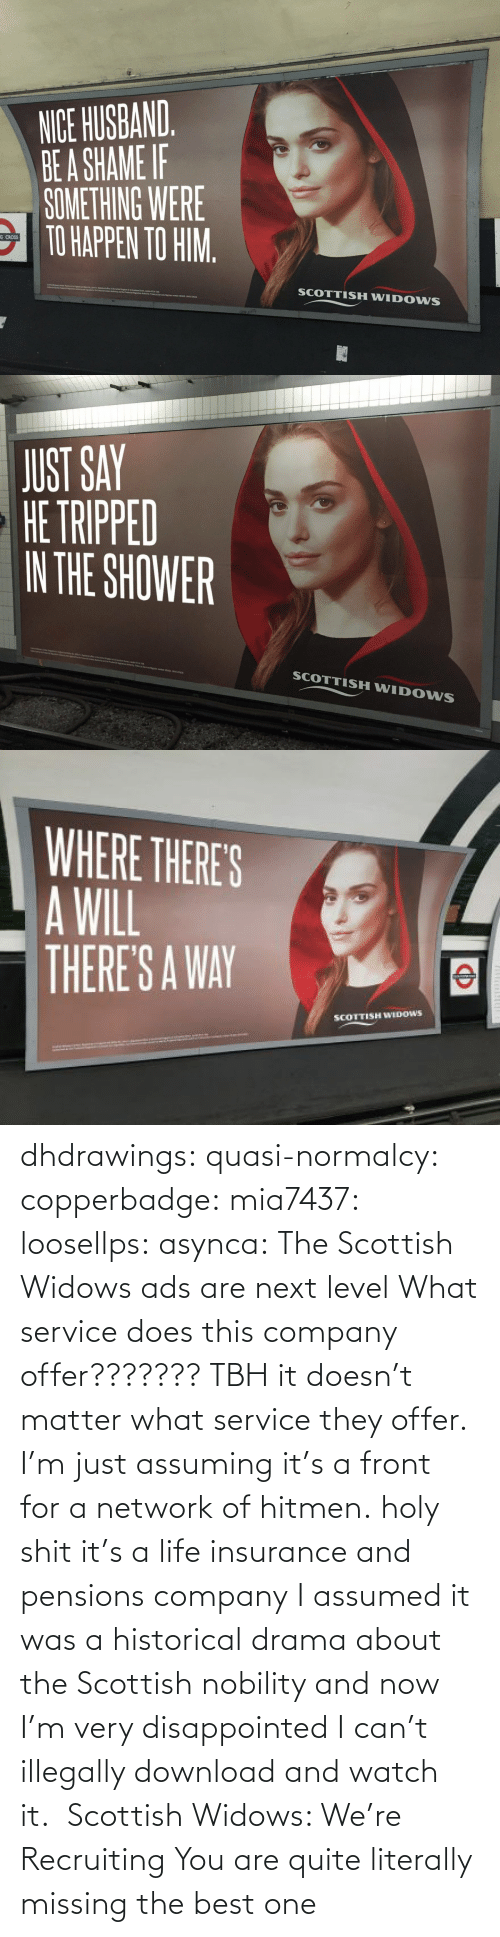 wikipedia: dhdrawings:  quasi-normalcy:  copperbadge:  mia7437:  loosellps:  asynca: The Scottish Widows ads are next level What service does this company offer??????? TBH it doesn't matter what service they offer. I'm just assuming it's a front for a network of hitmen.  holy shit it's a life insurance and pensions company  I assumed it was a historical drama about the Scottish nobility and now I'm very disappointed I can't illegally download and watch it.     Scottish Widows: We're Recruiting    You are quite literally missing the best one